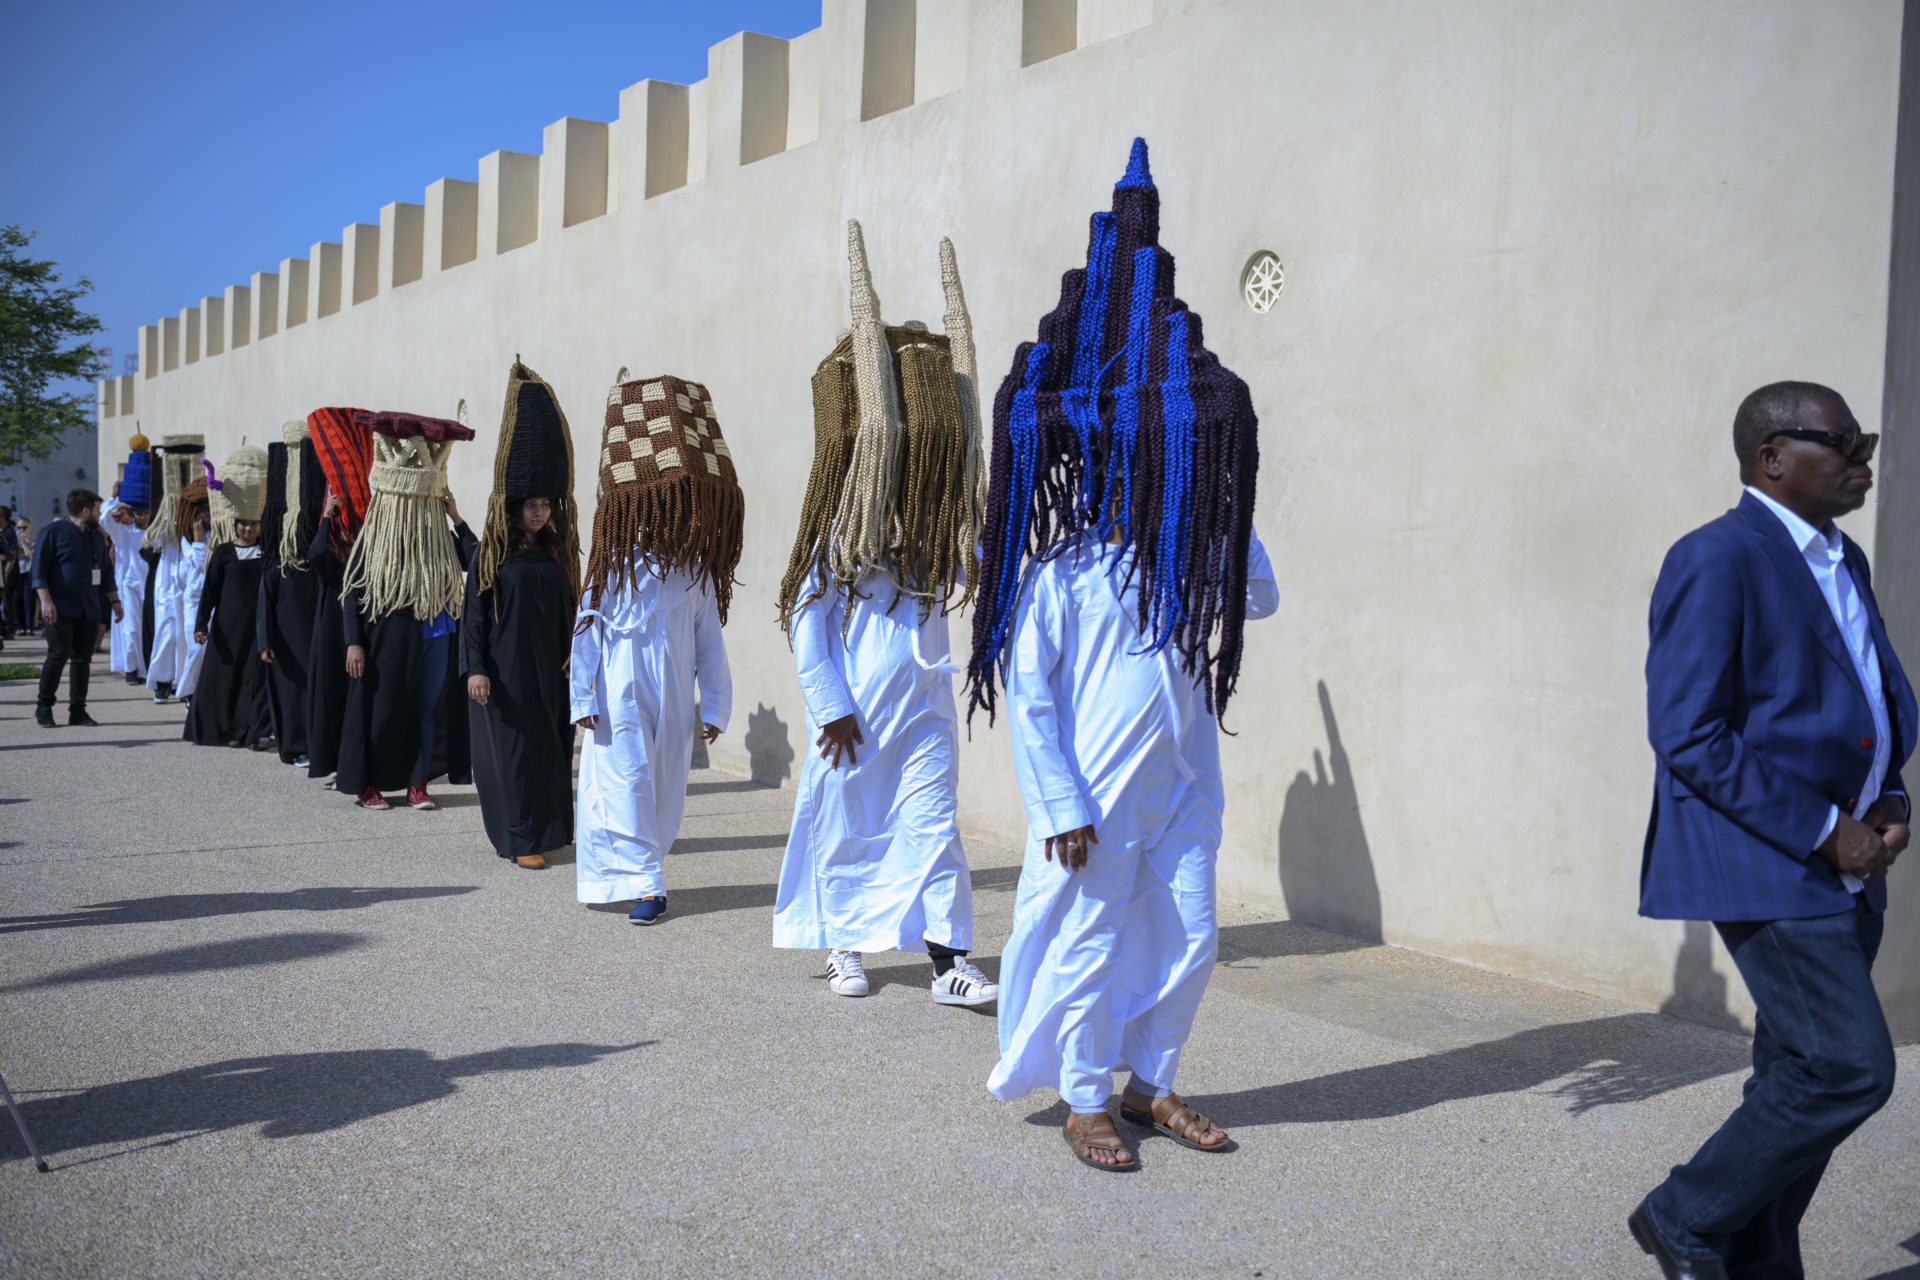 Meschac Gaba, Perruques Architecture Émirats Arabes Unis performance, March 9, 2019. Film Still Courtesy SAF